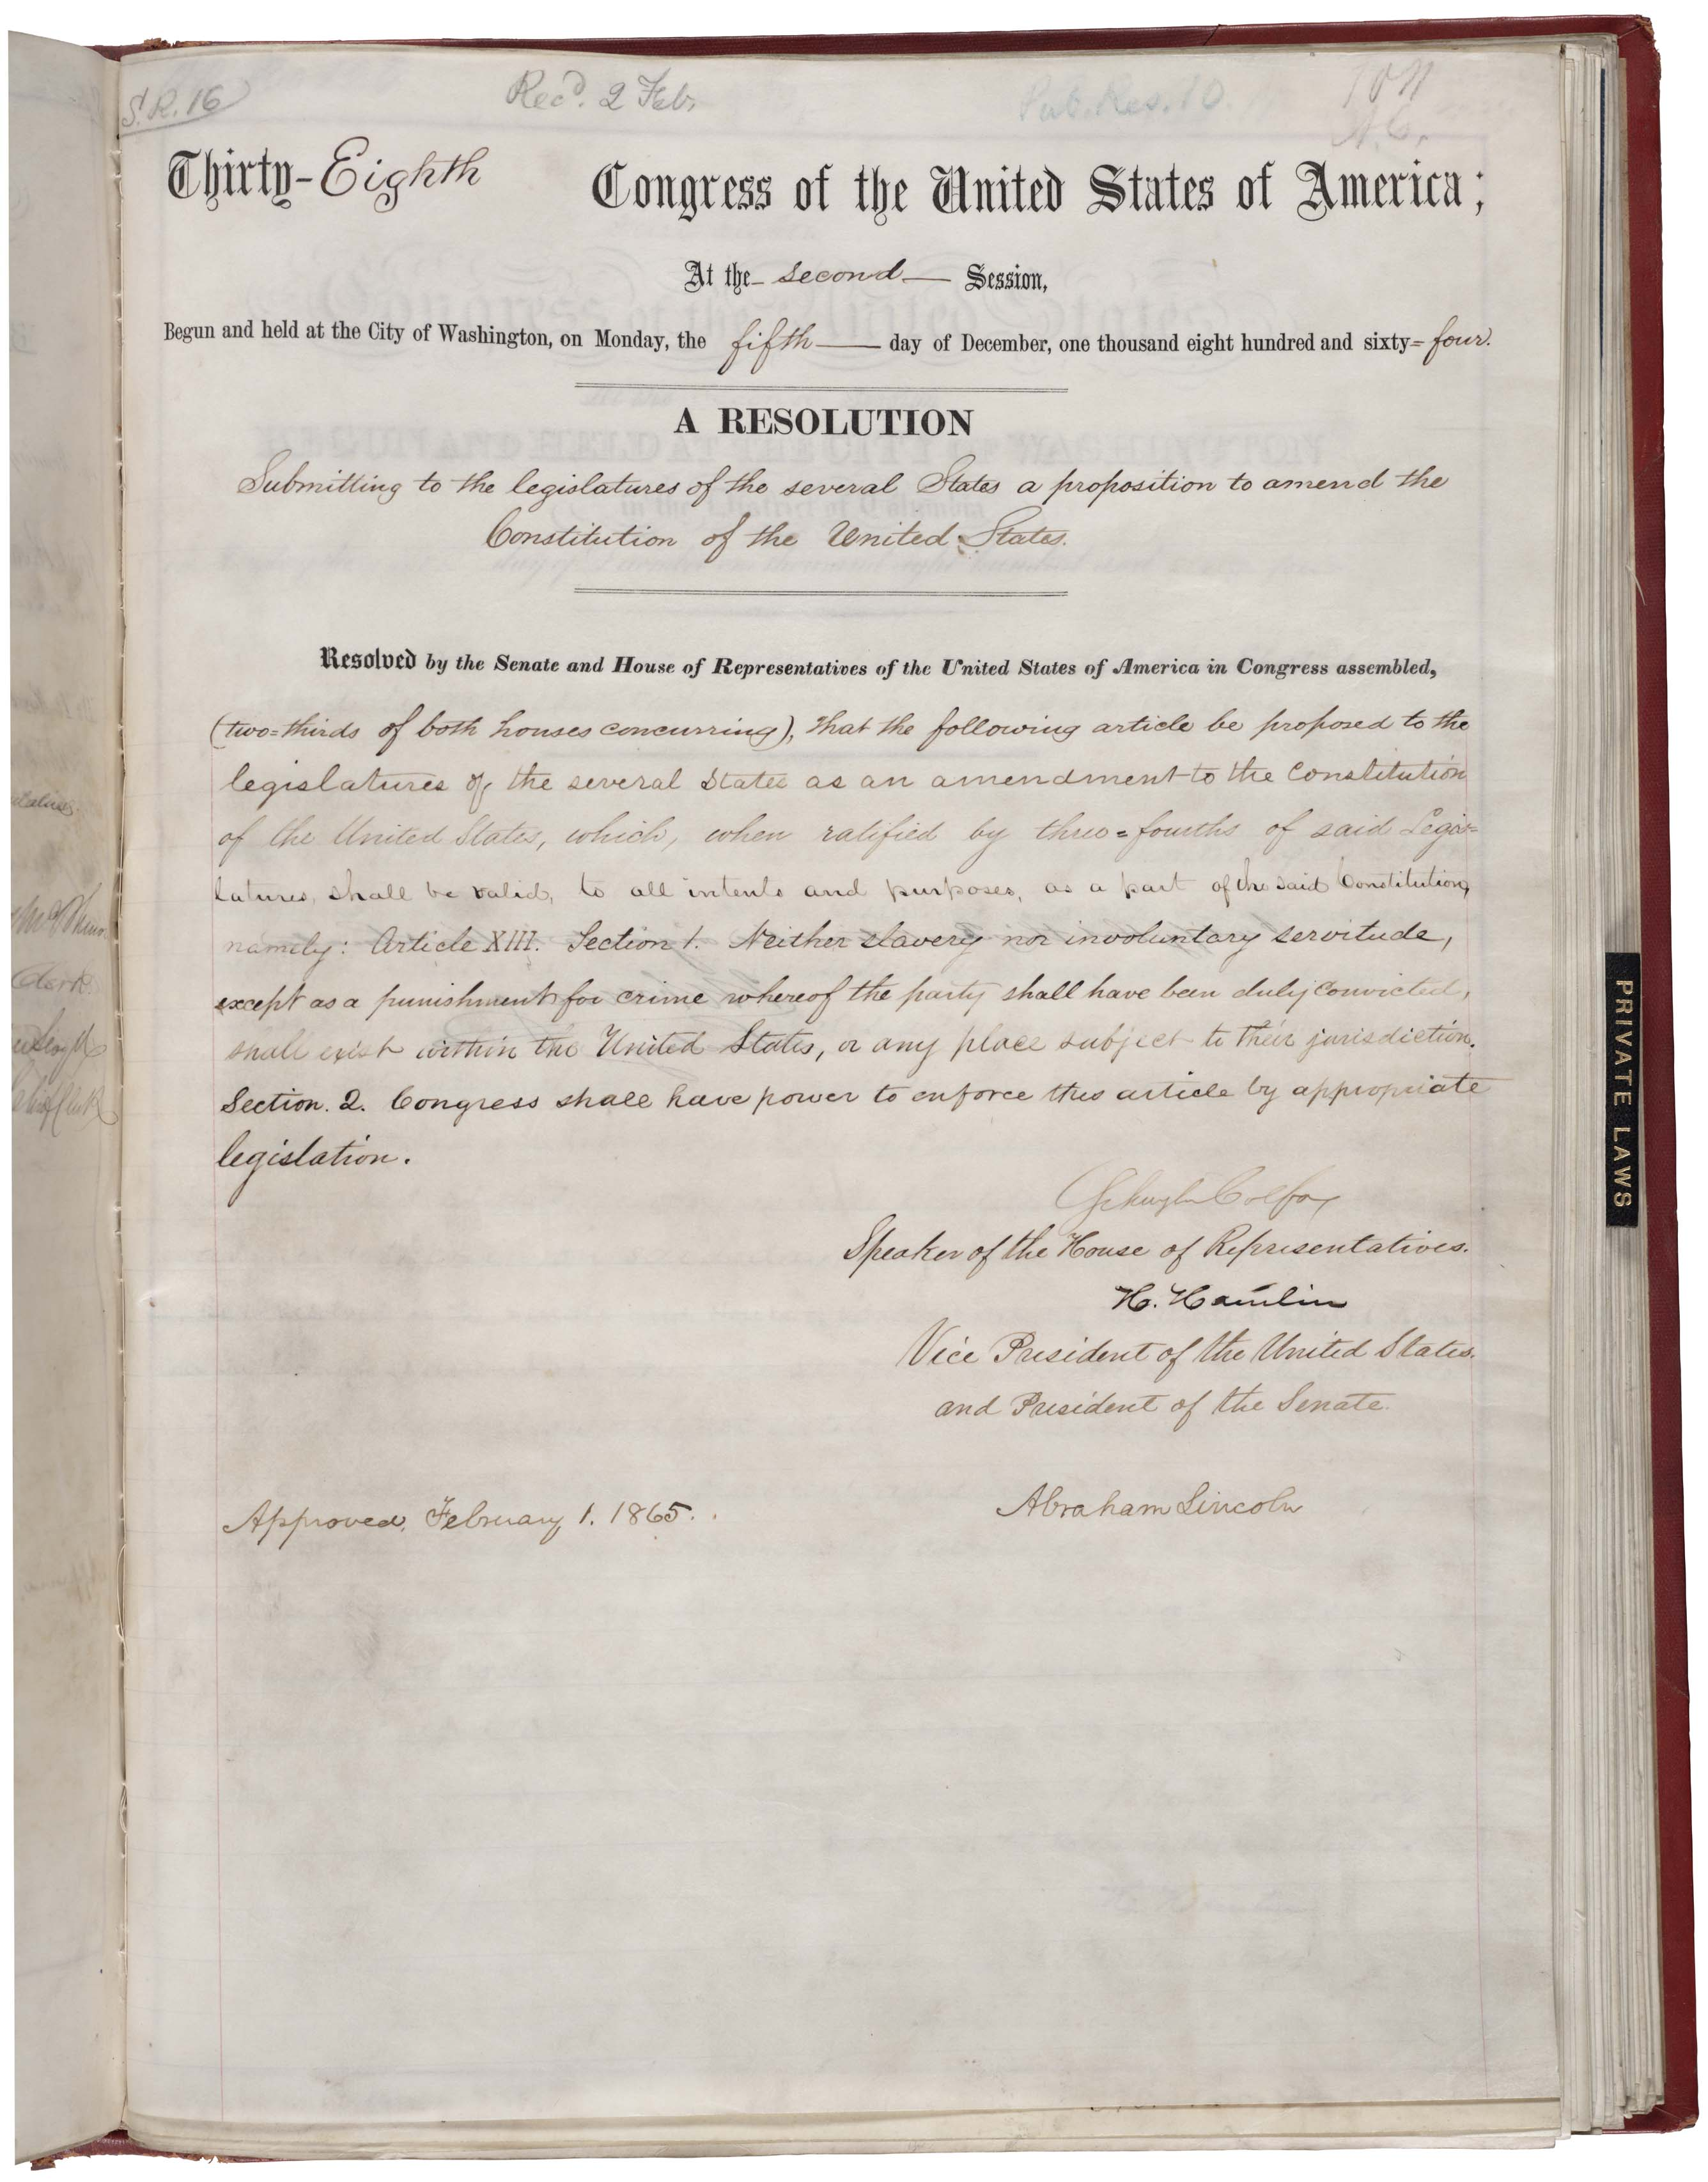 Abolition of Slavery in United States of America - December 6th 1865